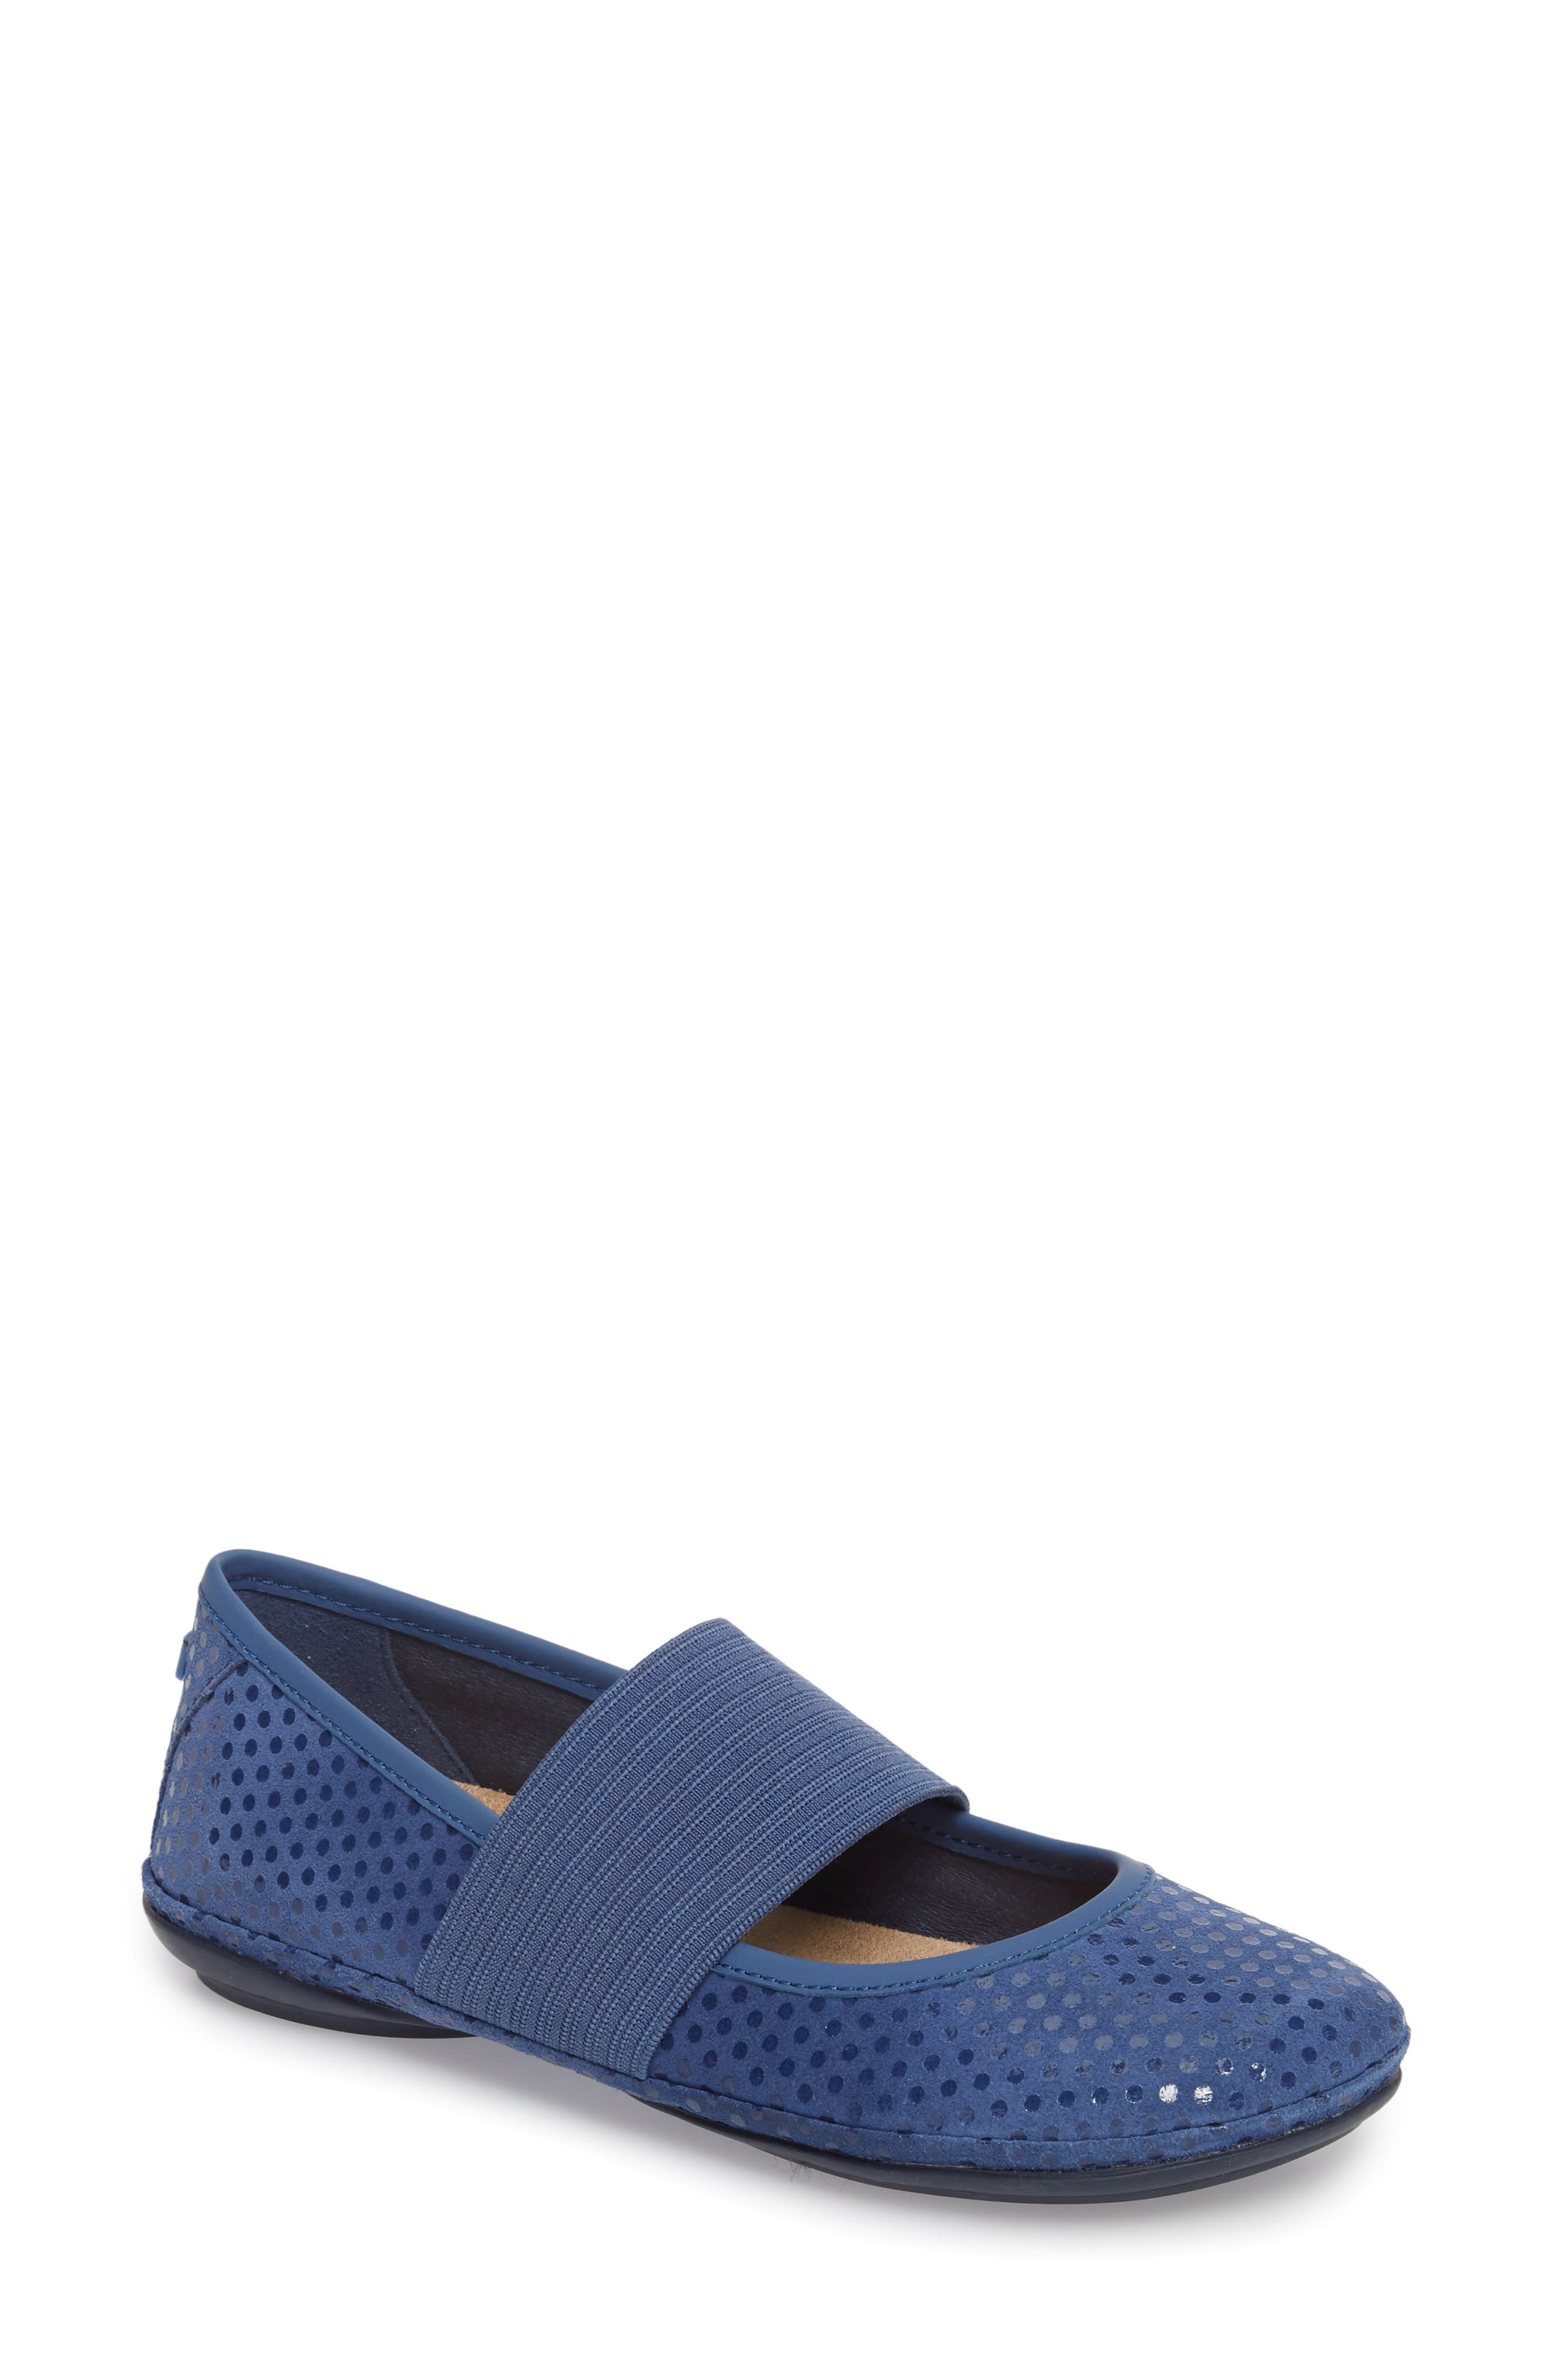 Right Nina Ballerina Flat,                         Main,                         color, Medium Blue Nubuck